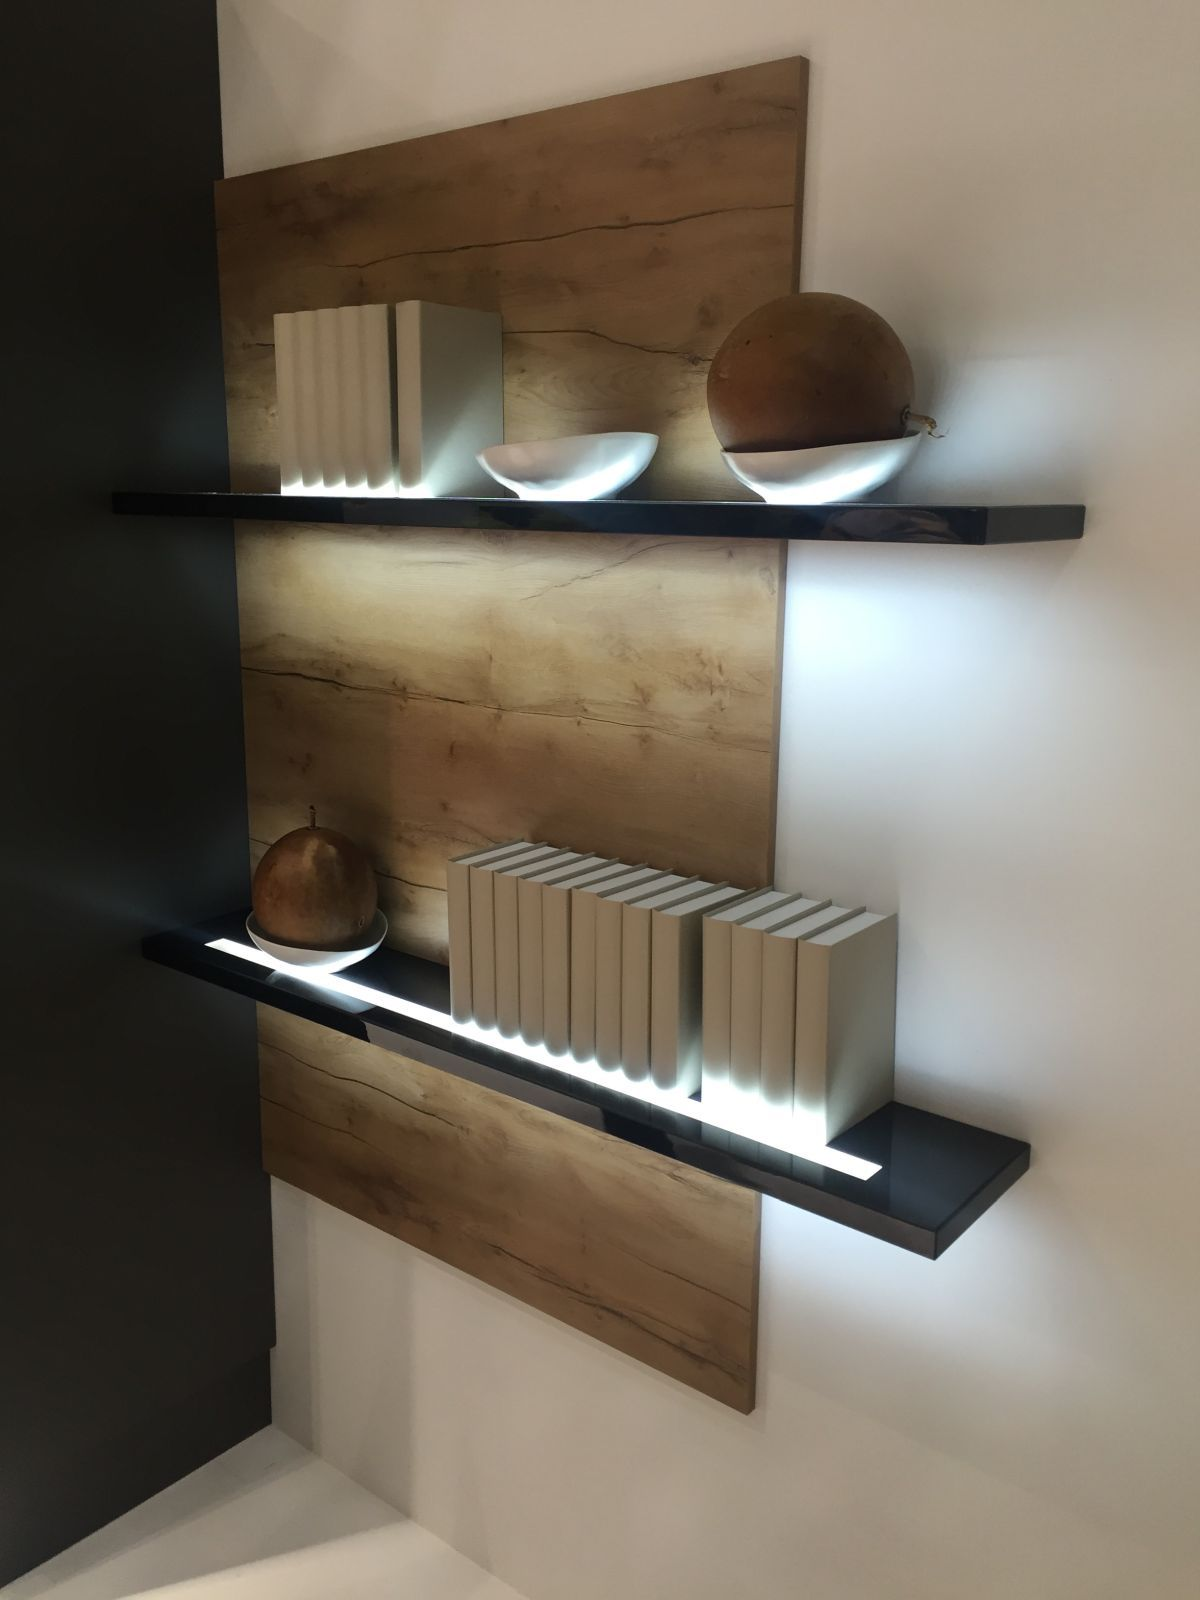 floating shelves with lights webfaceconsult led light corner shelf mountain wood coat racks and stands stick decorative brackets for bar garage storage organization systems plate